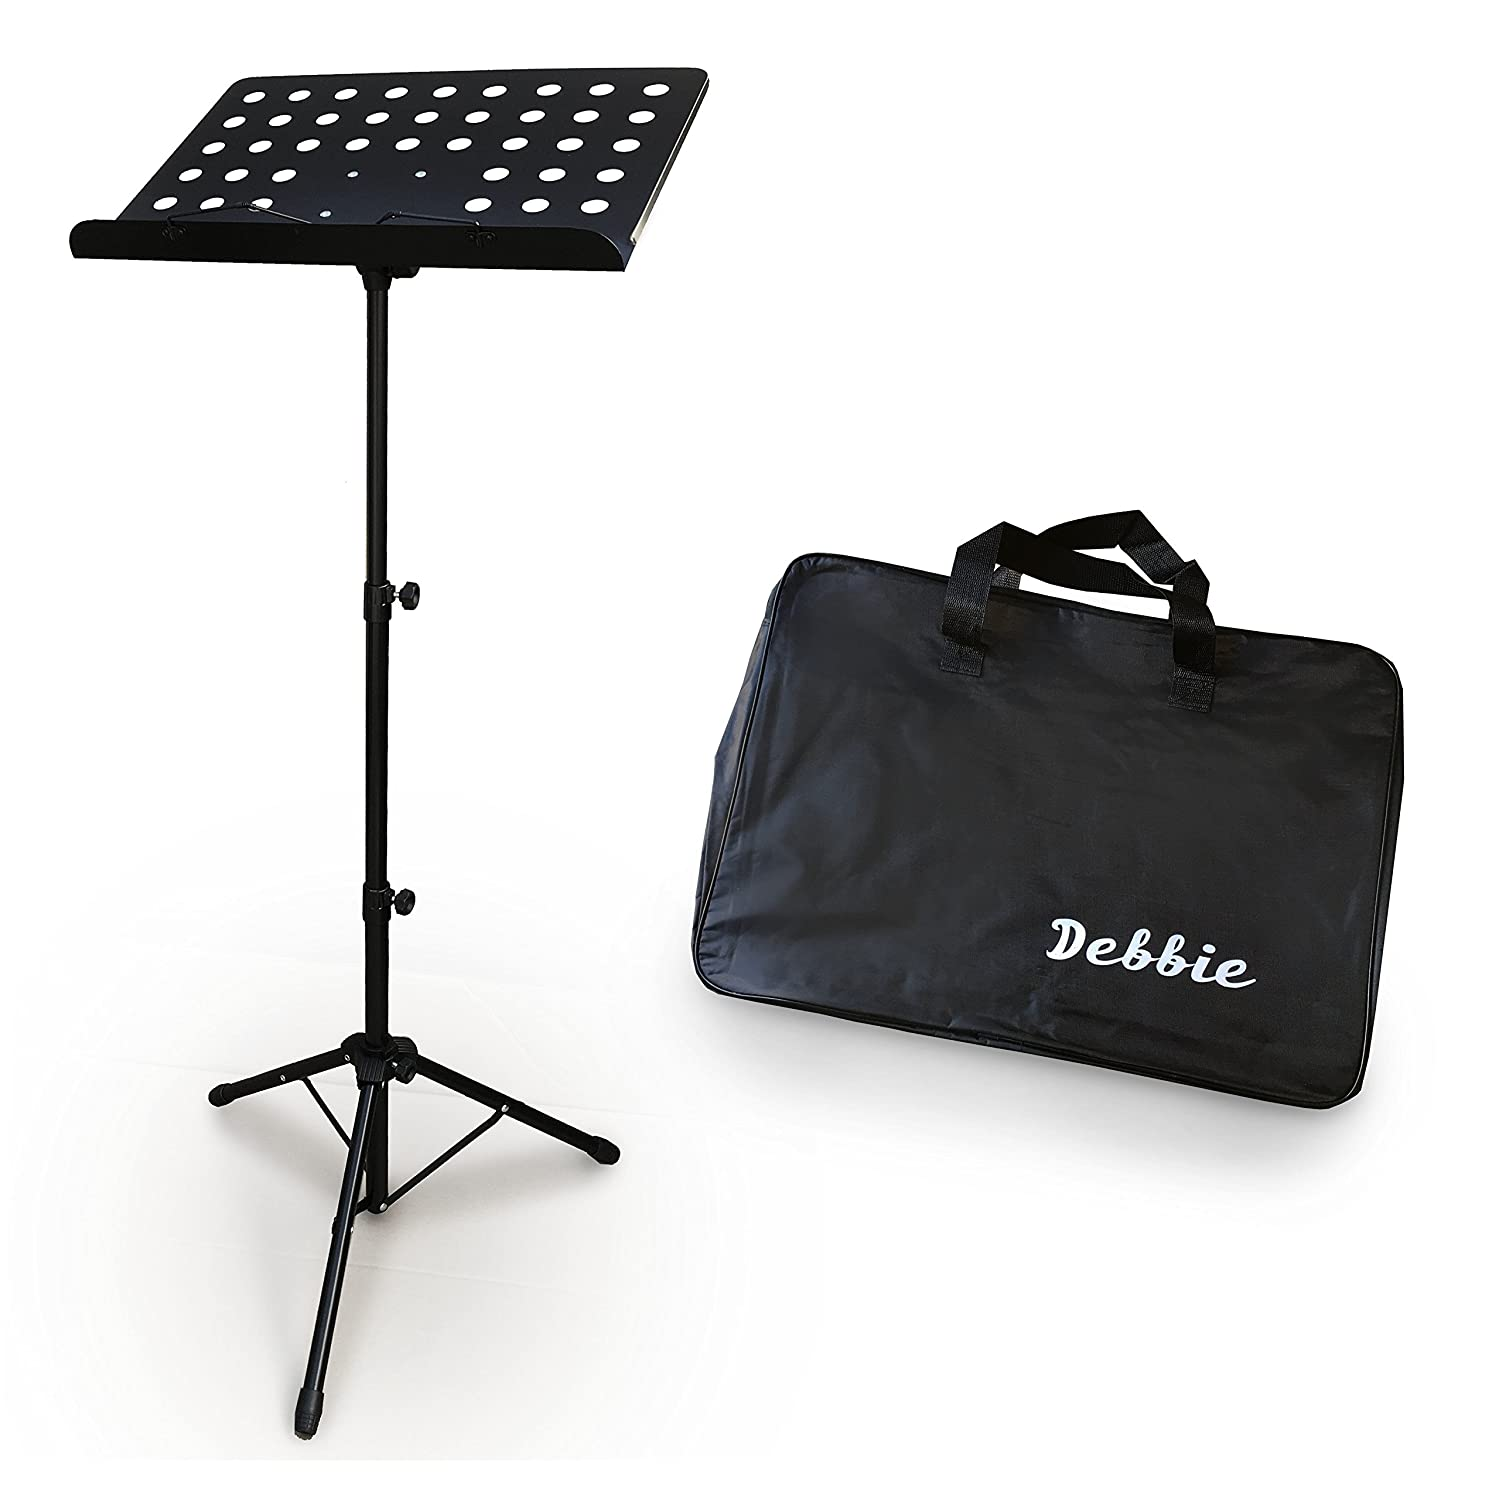 Adjustable Folding Sheet Music Stand Tripod Score Holder Mount IPAD - Free Carrying Black Bag - Heavy Duty and Professional Collapsible Orchestra - Drums, Piano, Violin, Flute, Clarinet, Guitar